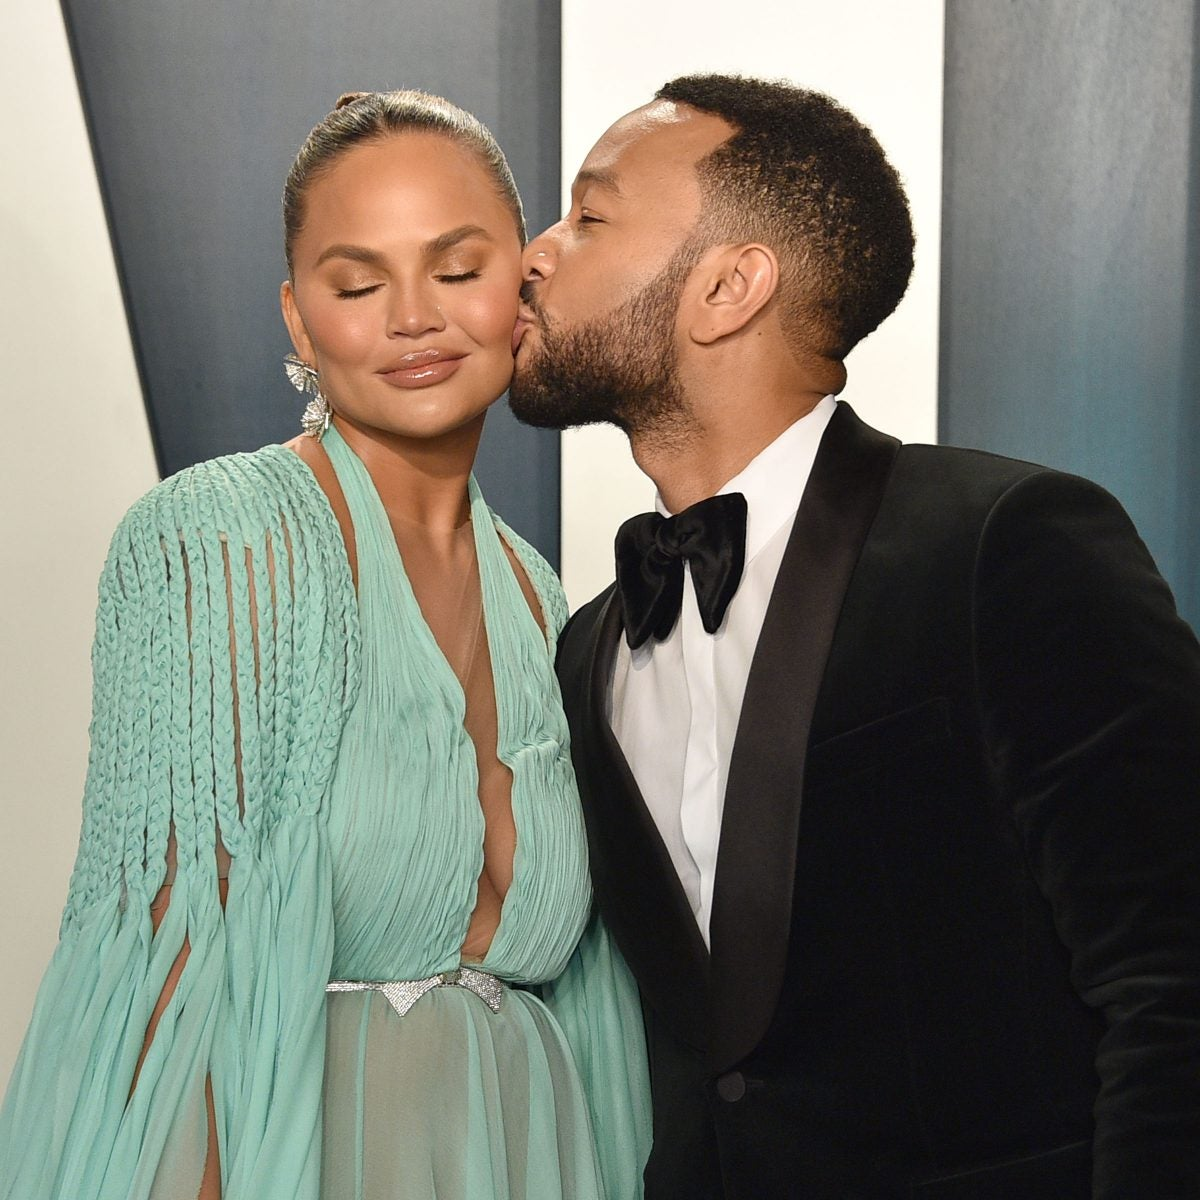 John Legend Performs Emotional Tribute To Wife Chrissy Teigen At Billboard Music Awards